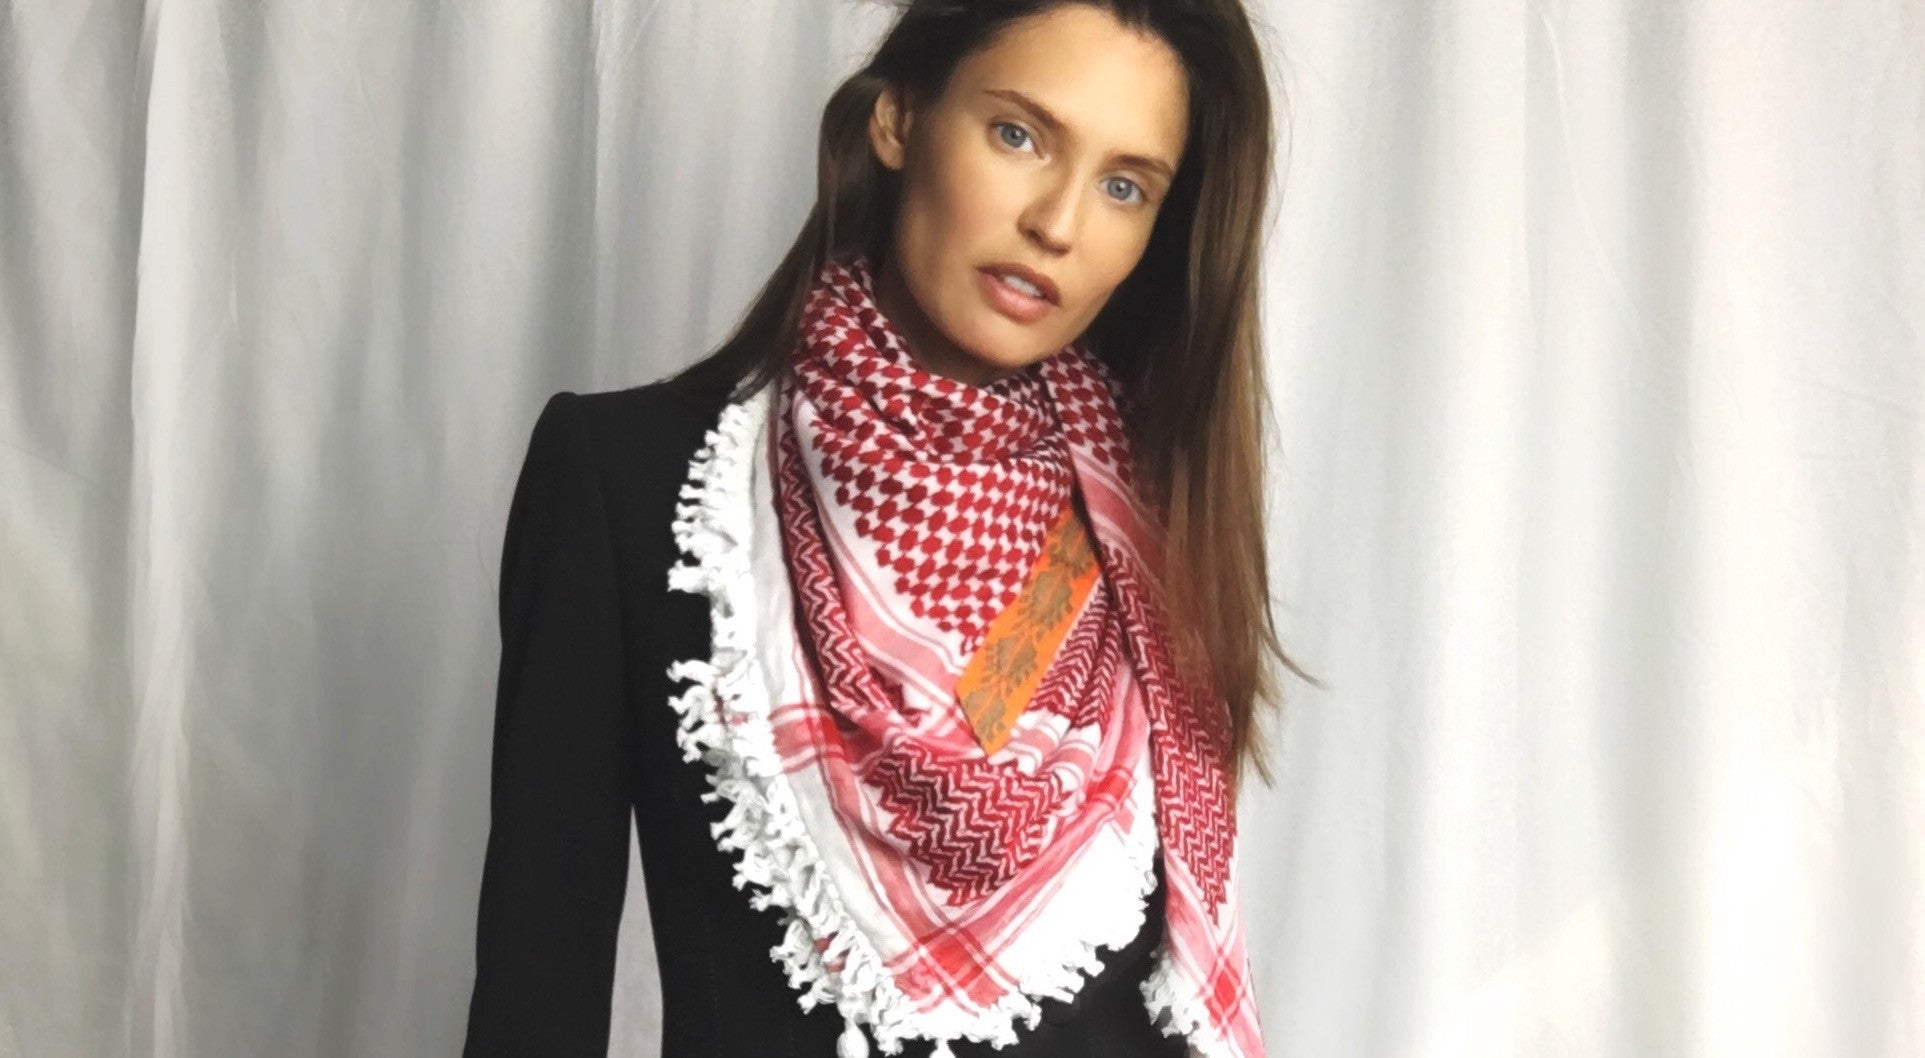 Bianca Balti with her SEP scarf